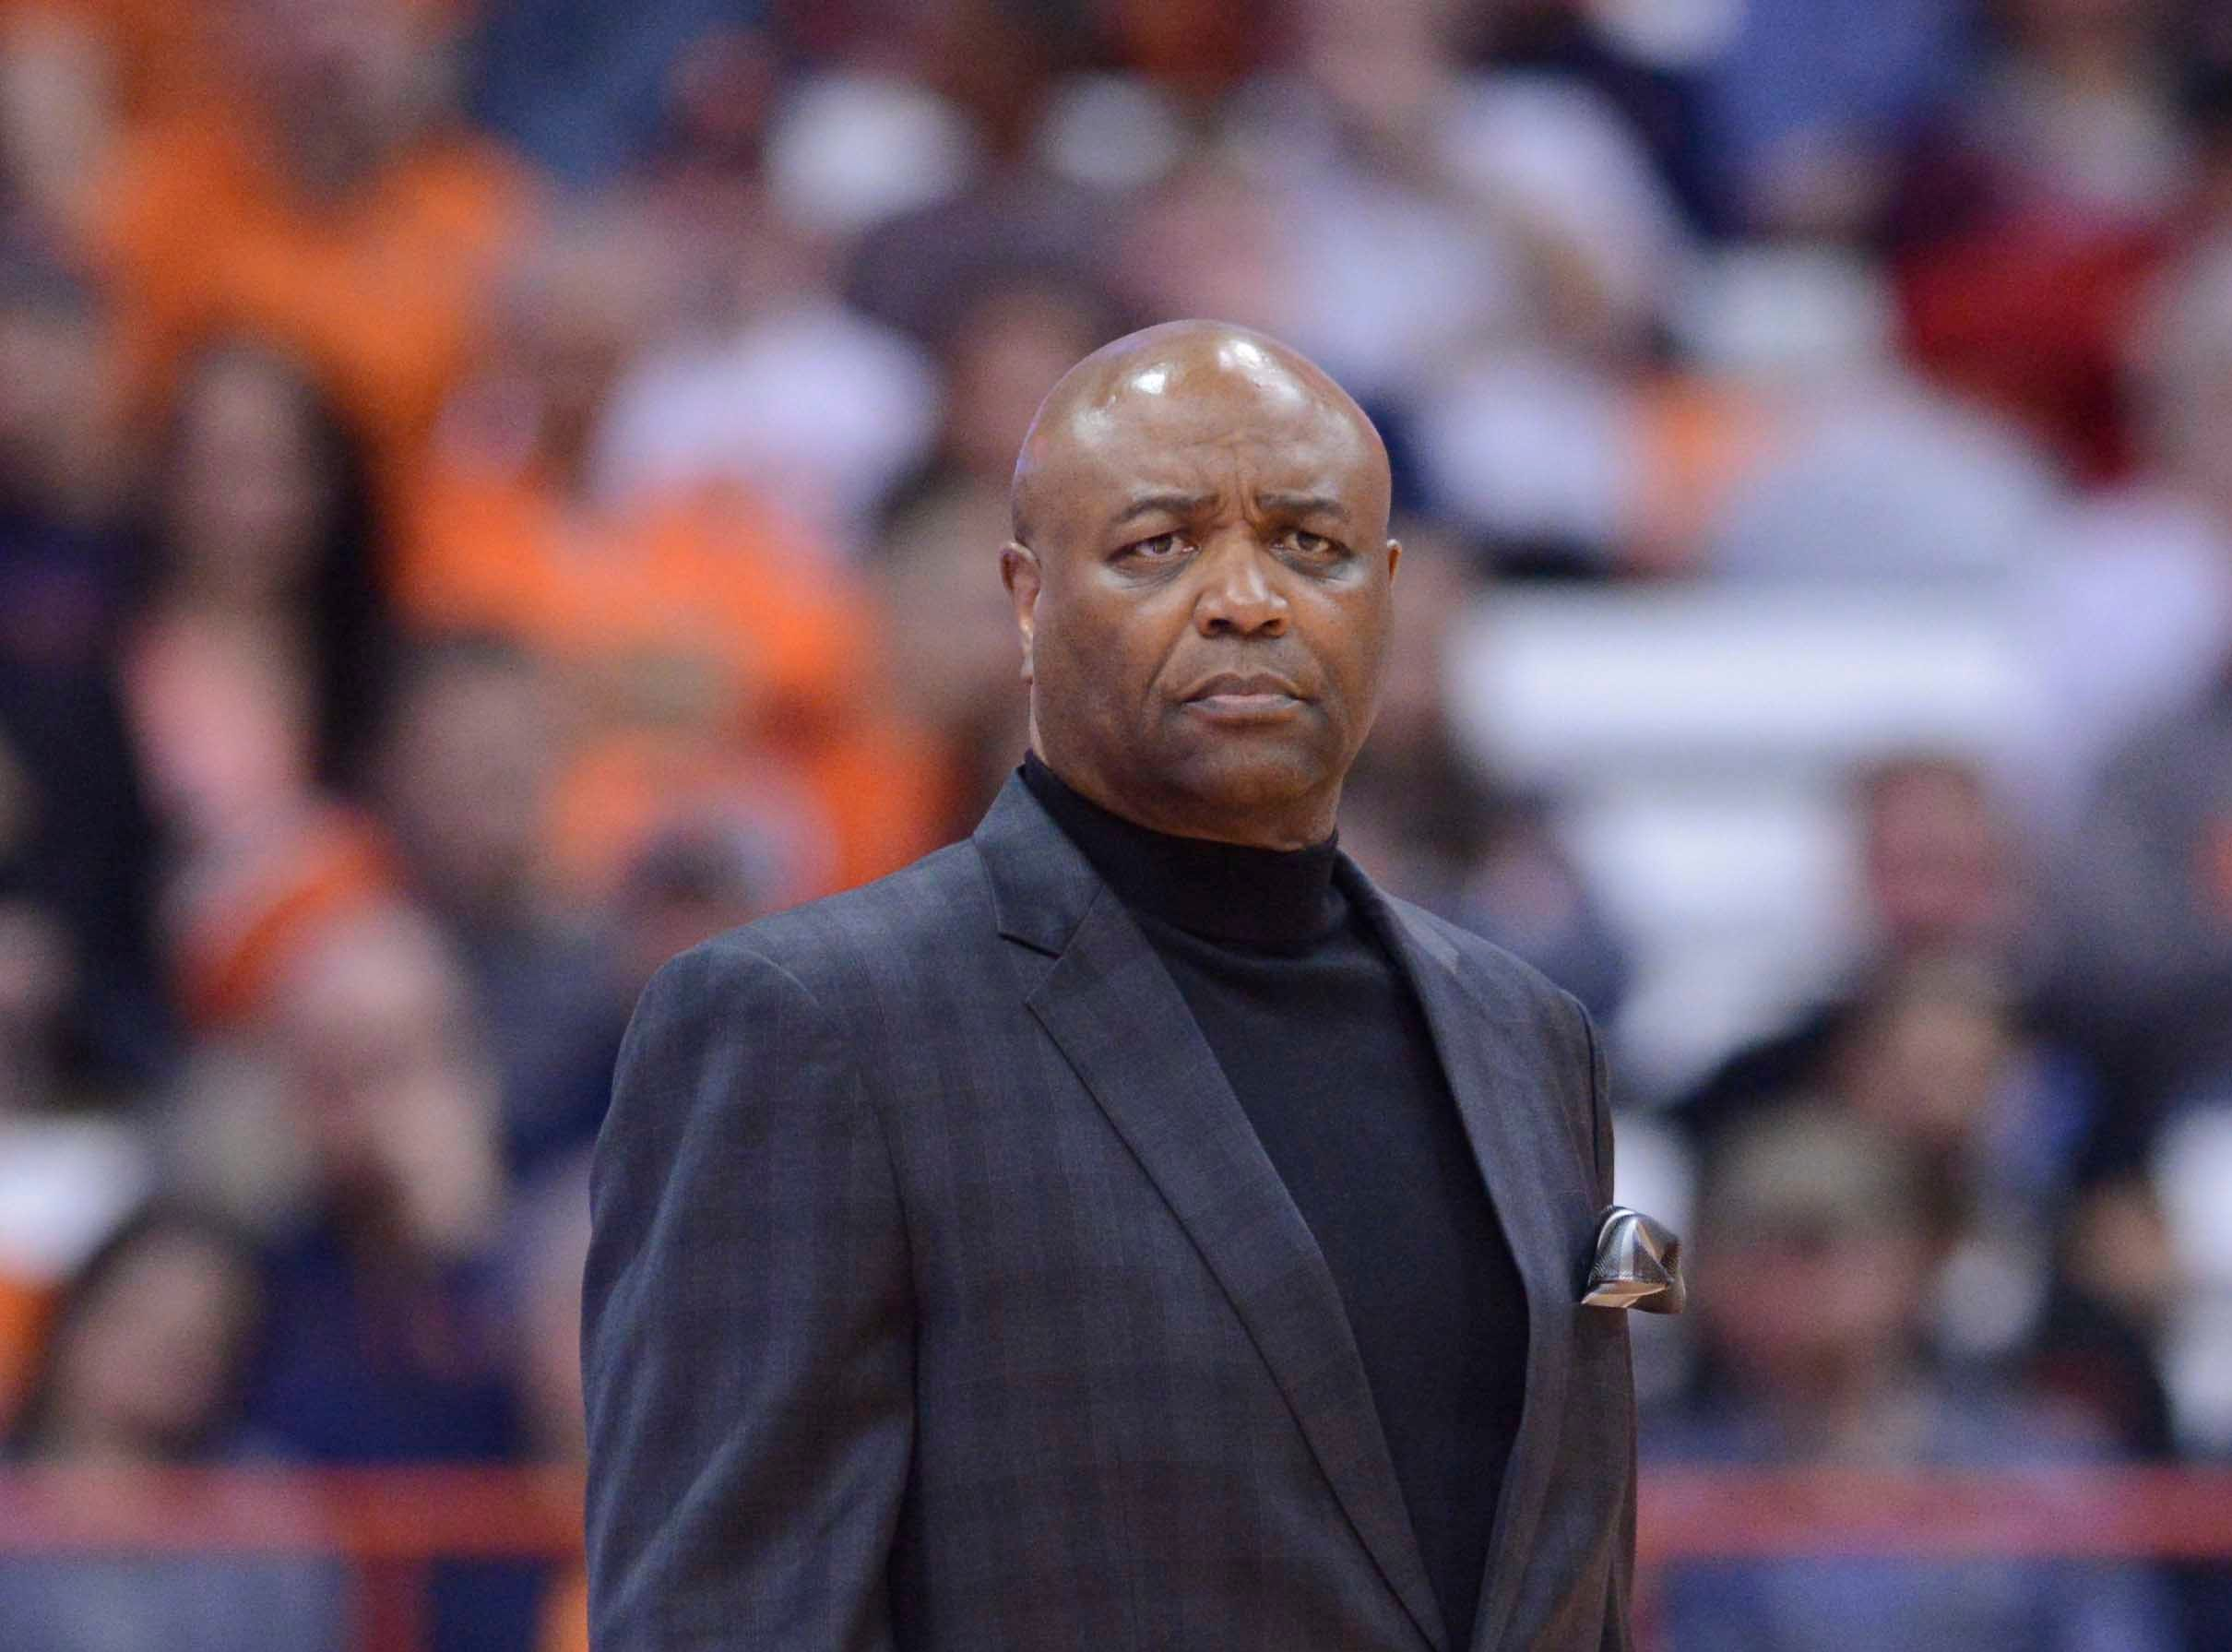 Feb 5, 2019; Syracuse, NY, USA; Florida State Seminoles head coach Leonard Hamilton watches the play on the court in the first half against the Syracuse Orange at the Carrier Dome. Mandatory Credit: Mark Konezny-USA TODAY Sports